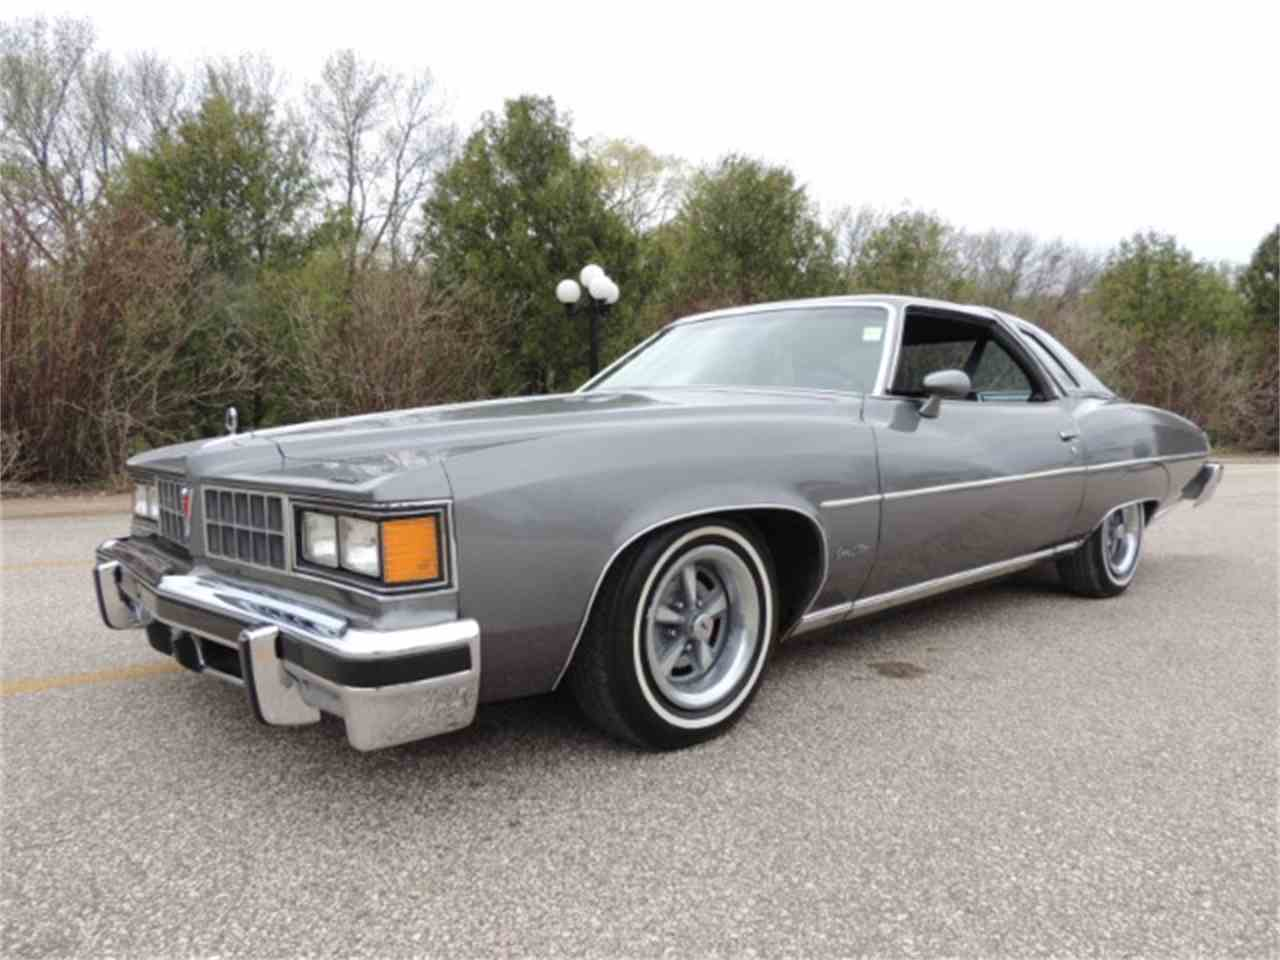 Large Picture of 1977 Pontiac Grand LeMans located in Iowa - $10,995.00 - LFDL